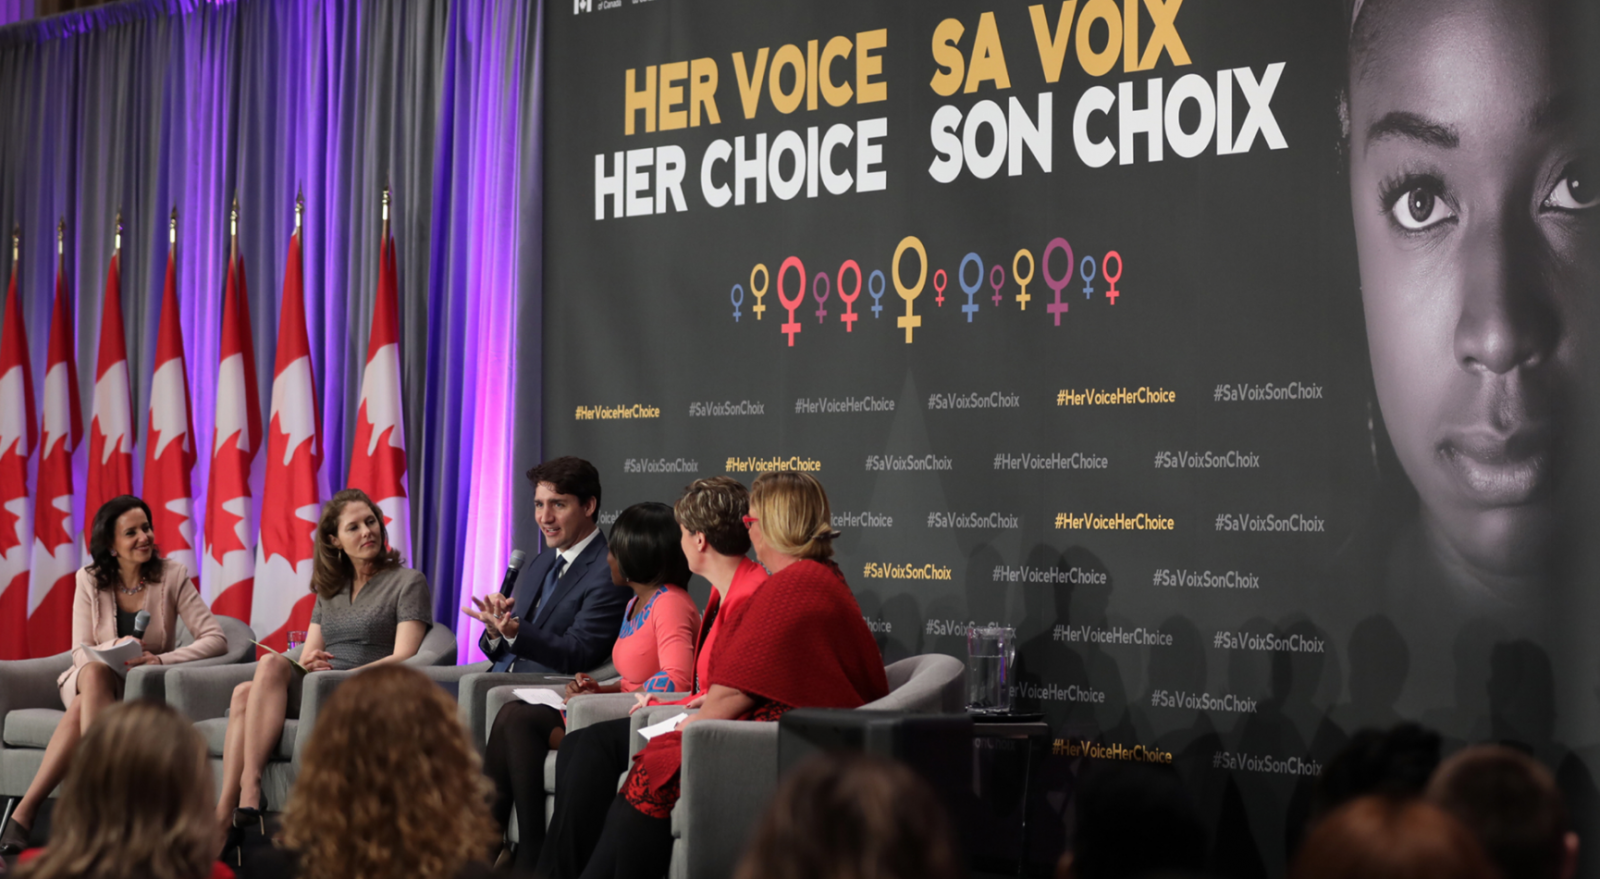 Justin Trudeau, Her Voice Her Choice, right to choose, abortion, International Women's Day